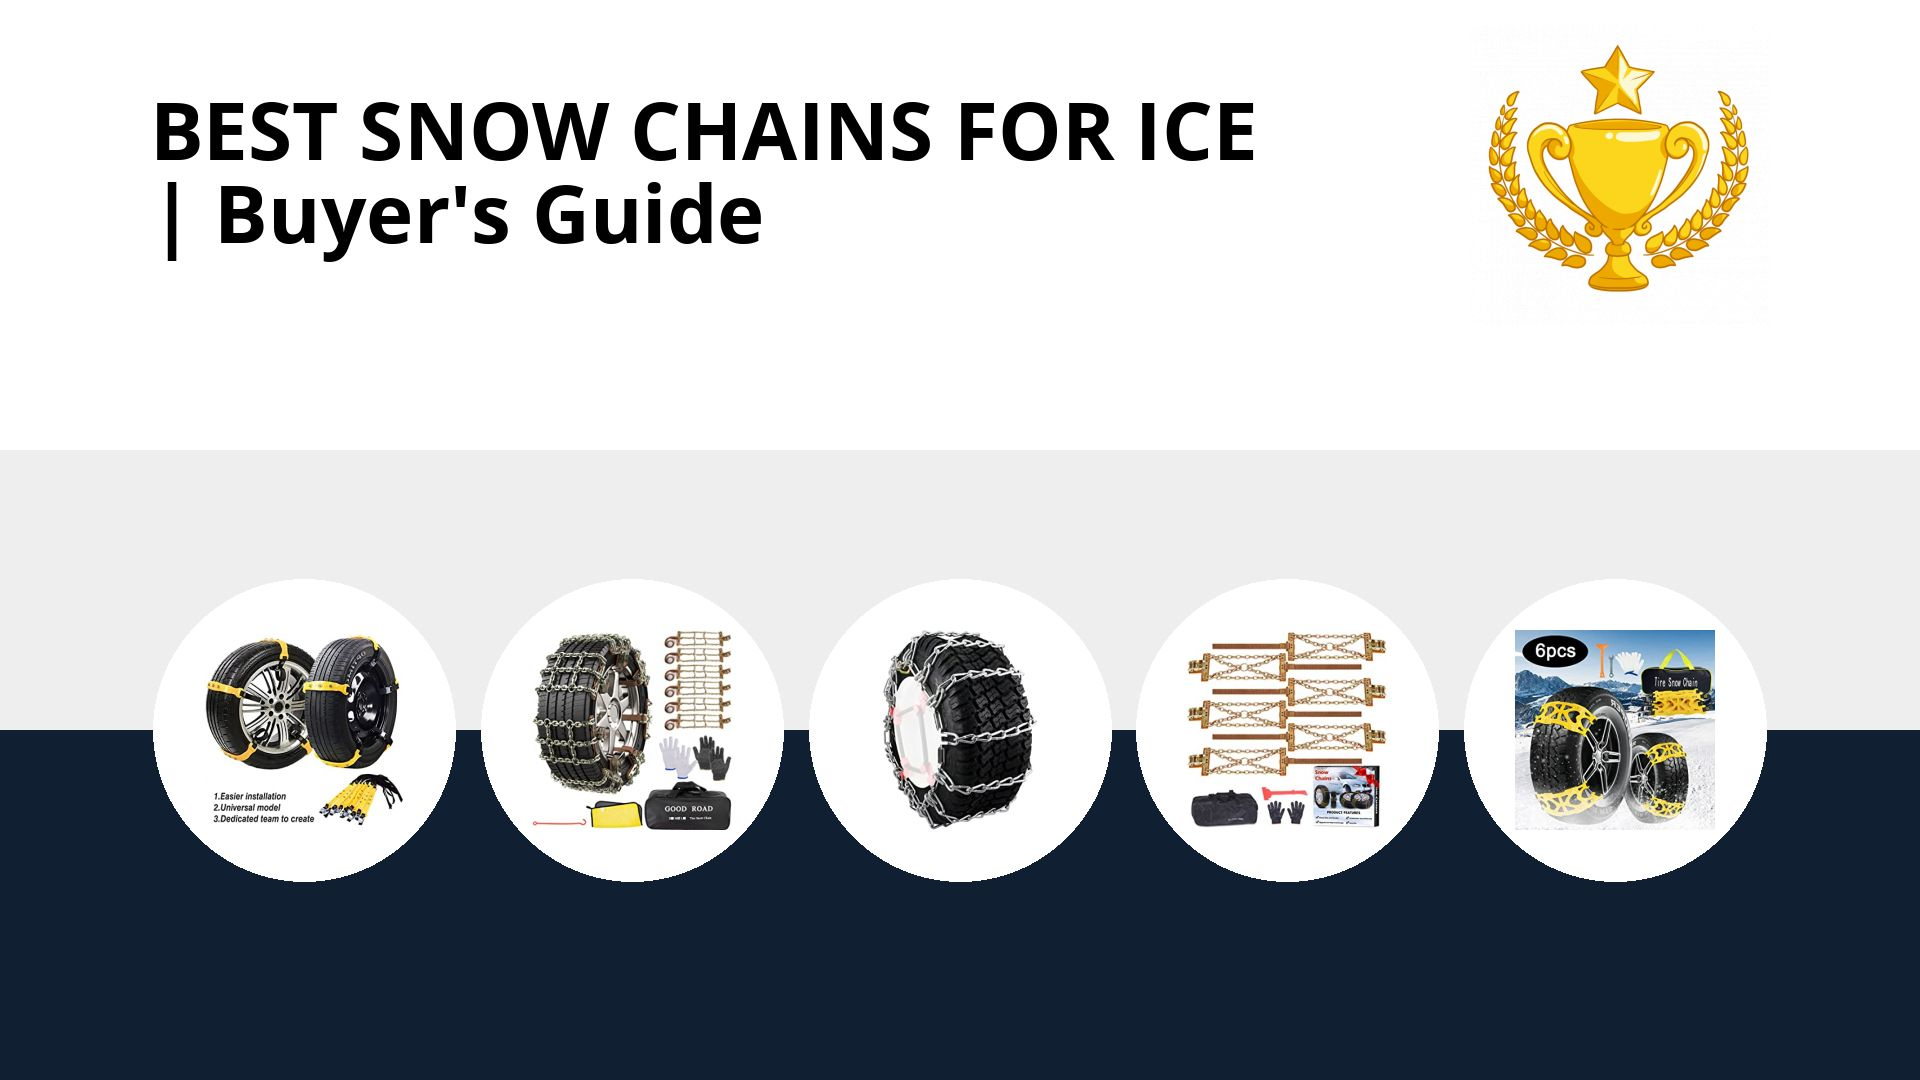 Best Snow Chains For Ice: image